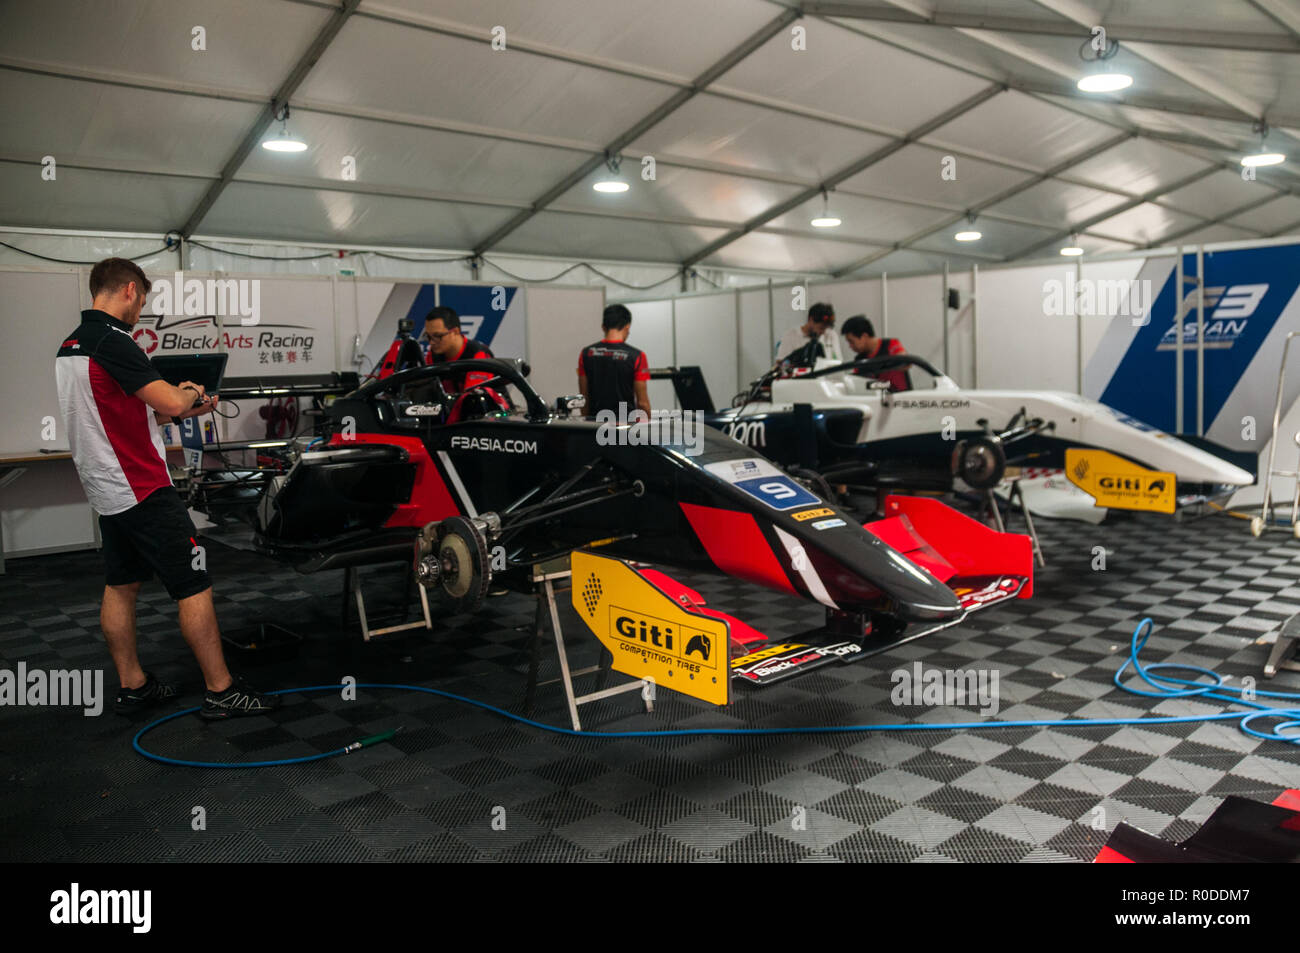 Black Arts Racing team F3 Asia racing cars undergoing maintenance in the pits of the Shanghai Circuit. - Stock Image